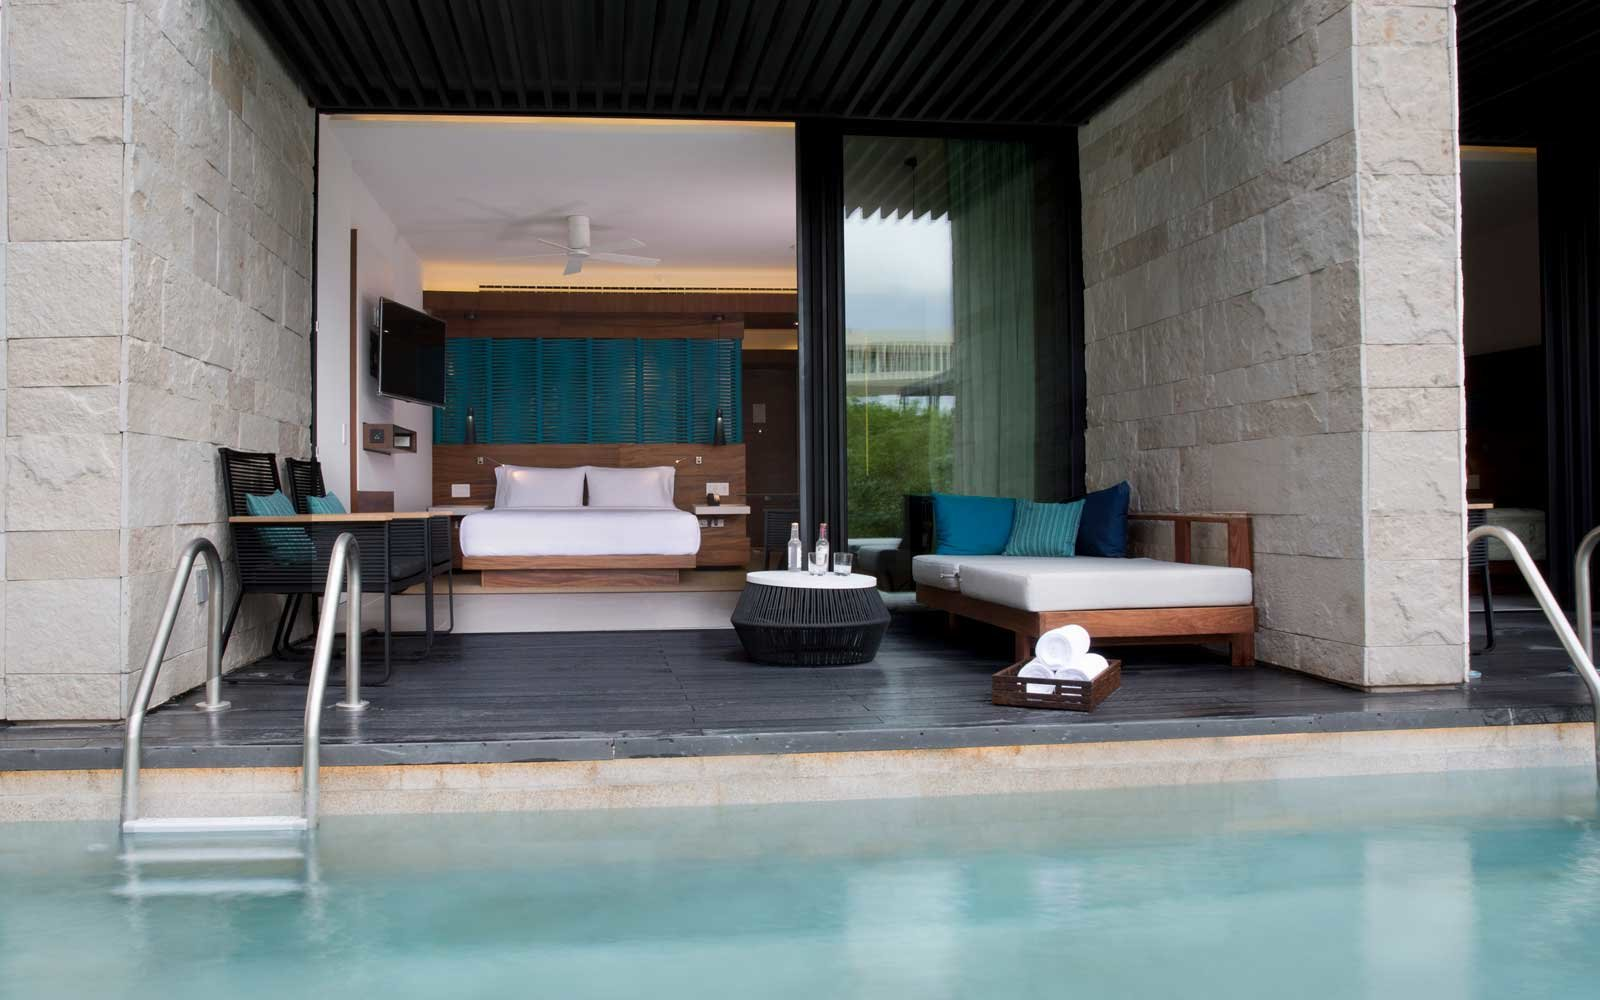 View to a room at the Hyatt Hotel in Playa del Carmen